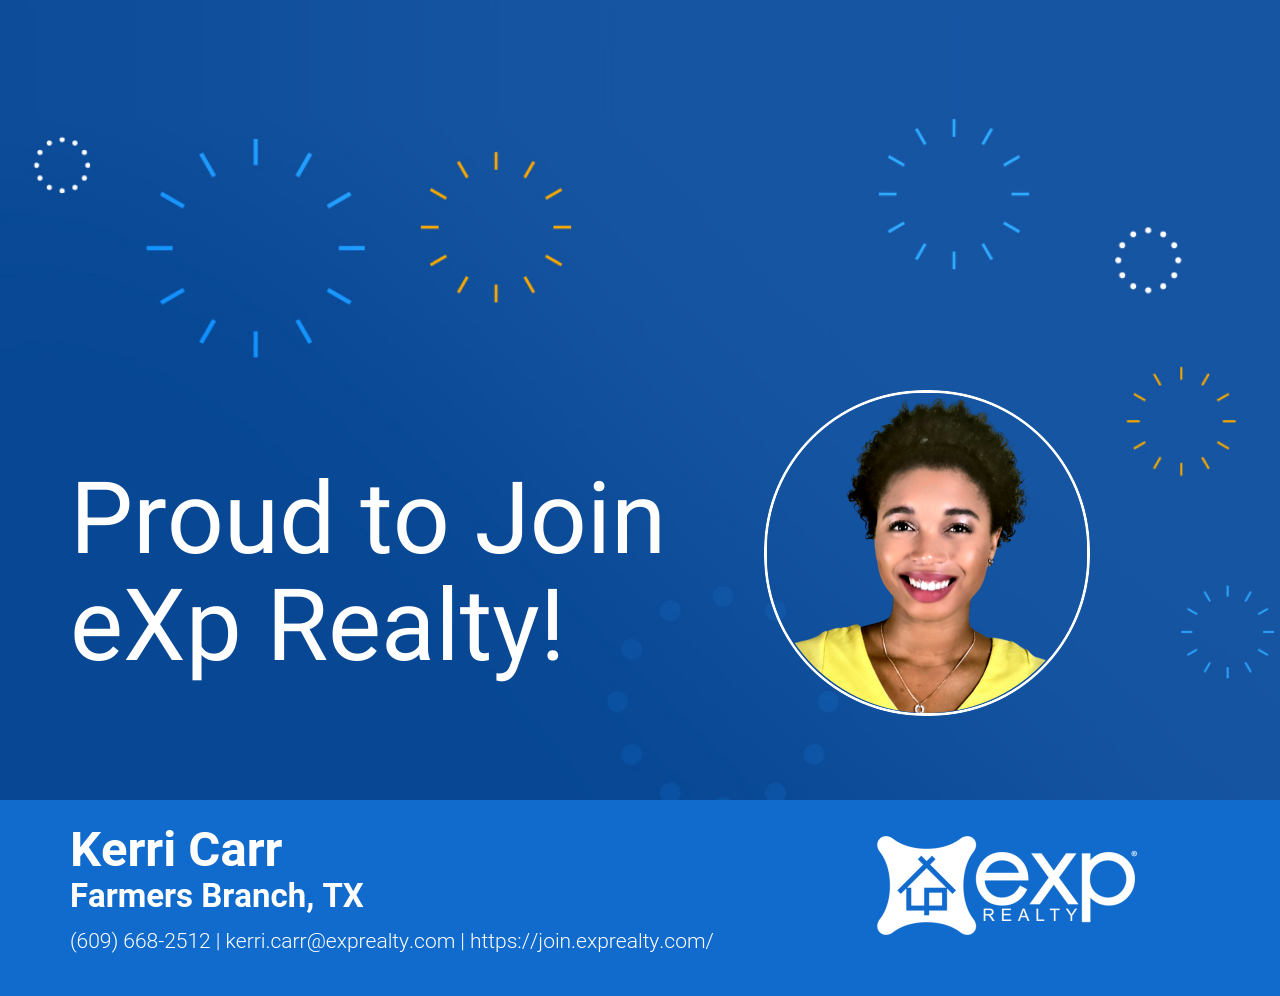 eXp Realty Welcomes Kerri Carr!